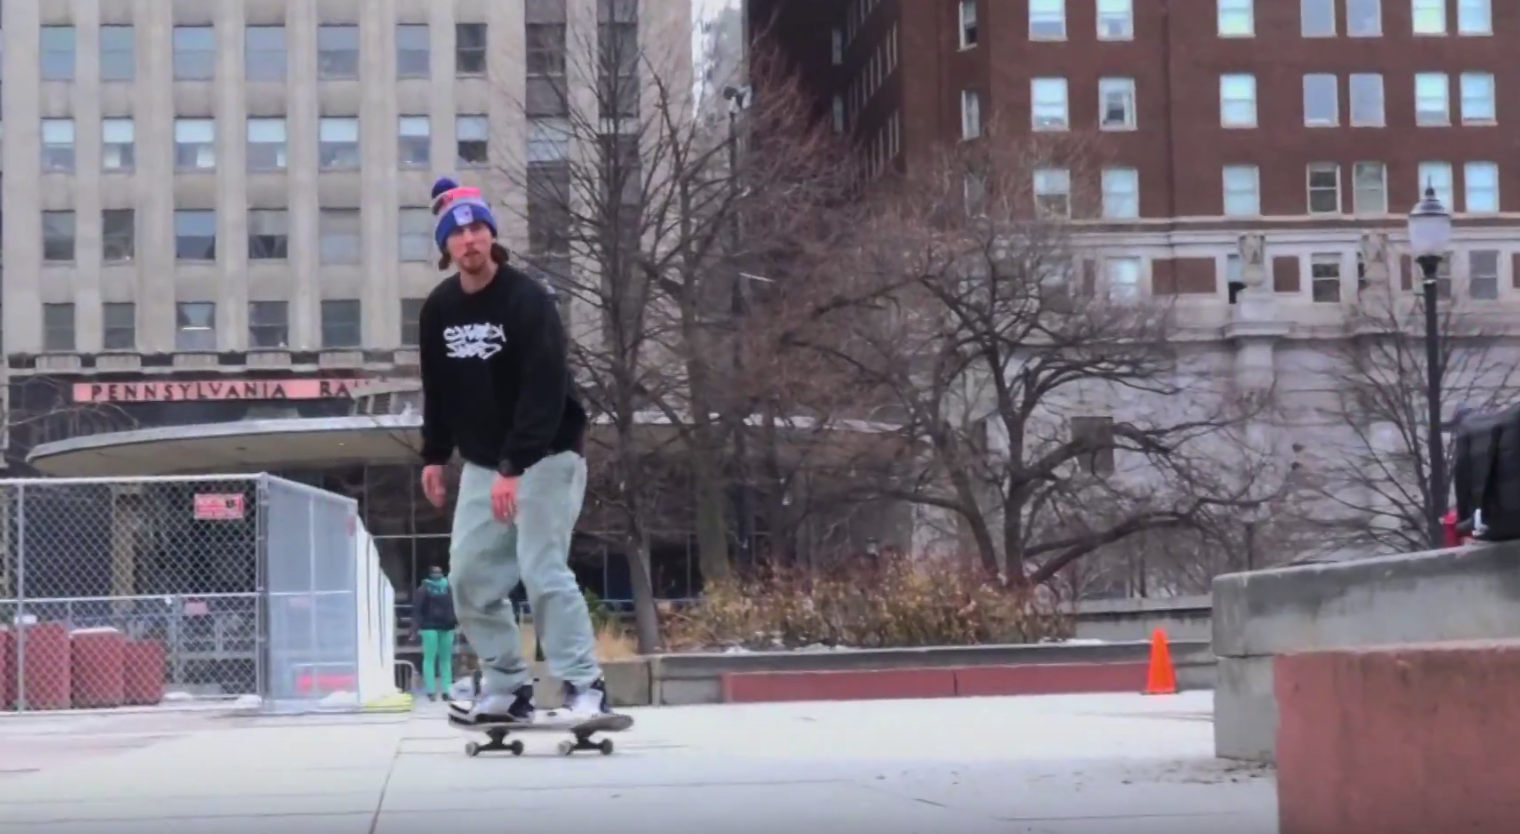 Skateboarders rejoice in the wake of the skating ban at LOVE Park.